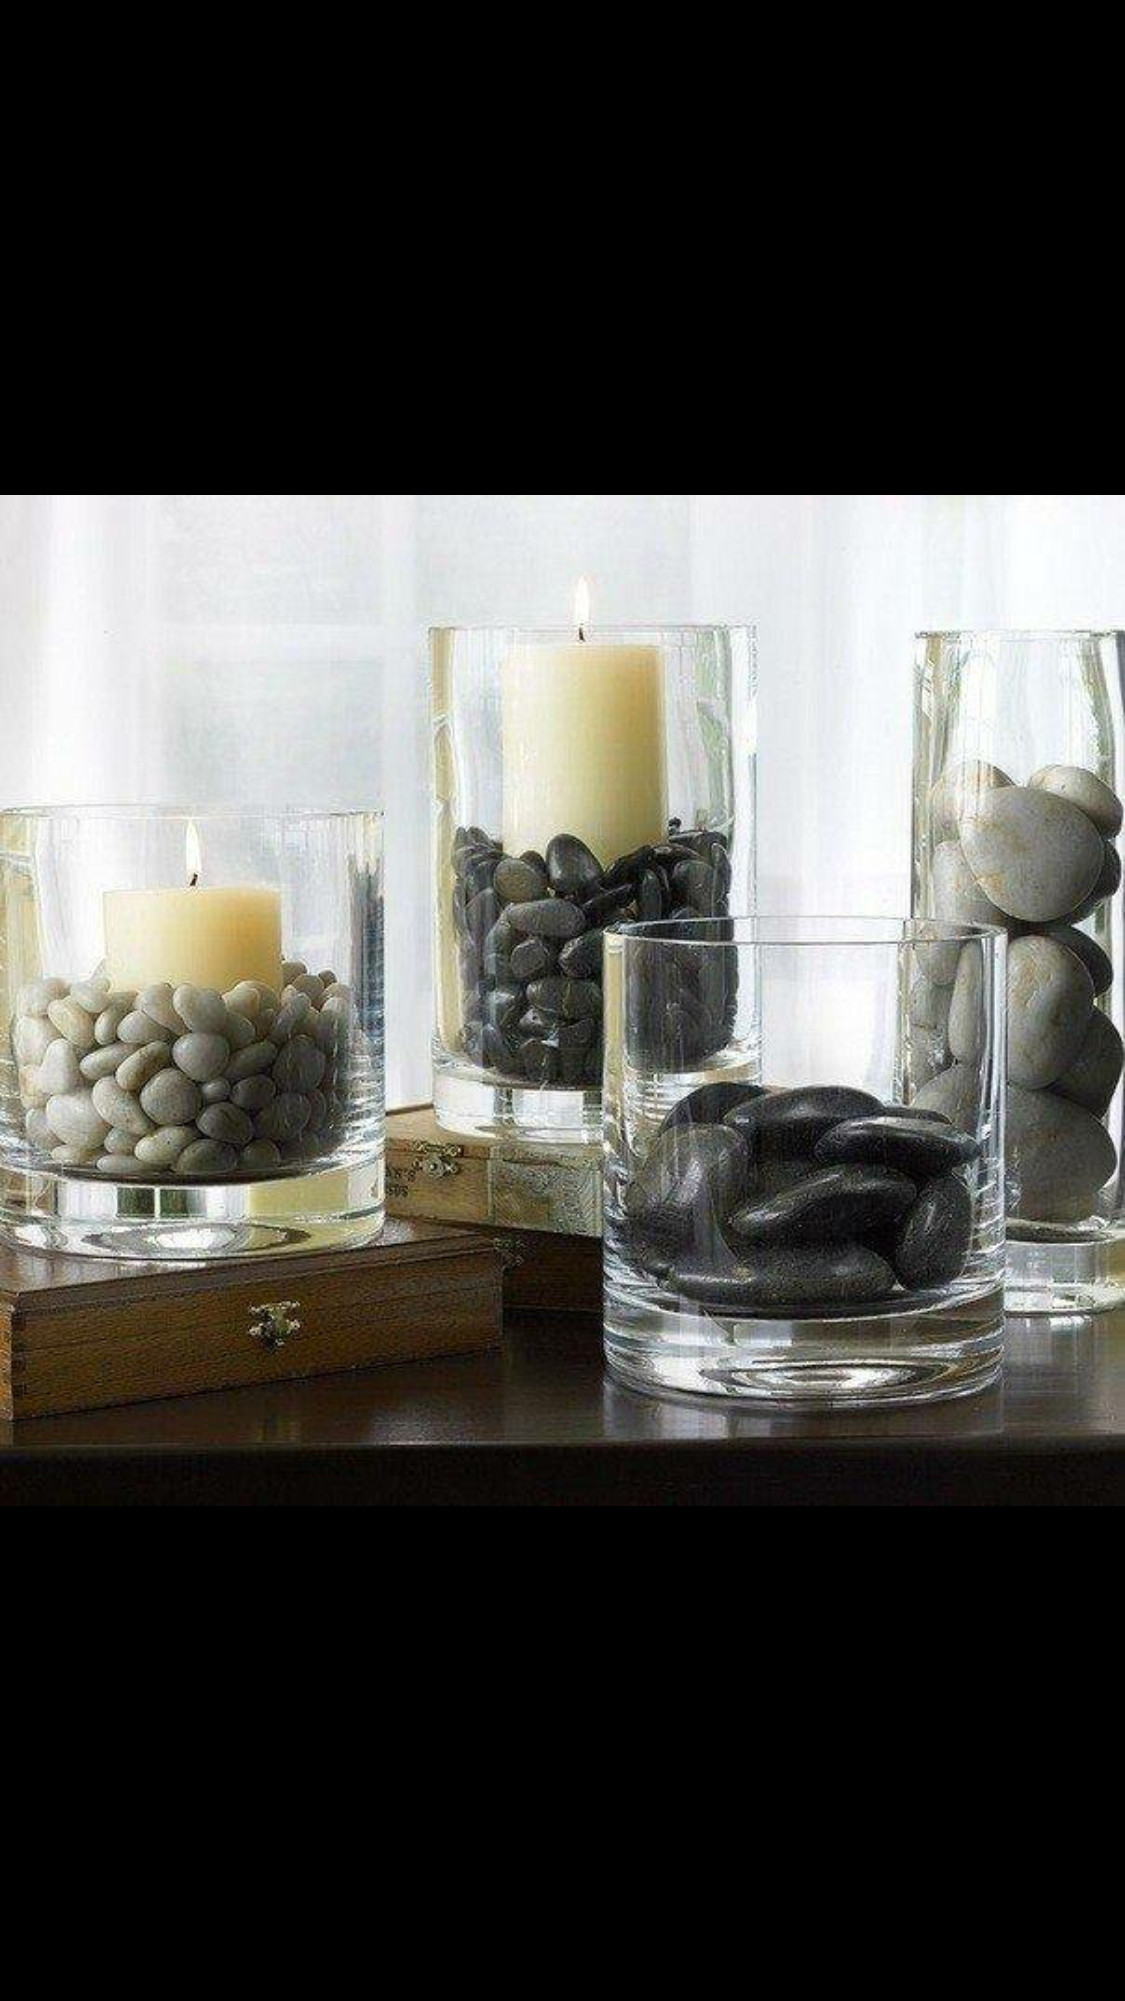 clear glass rocks for vases of pin by va›ra sedlaakova on svacny pinterest santa decorating and inside how to decorate the house with flowers ideas for lazy decorators